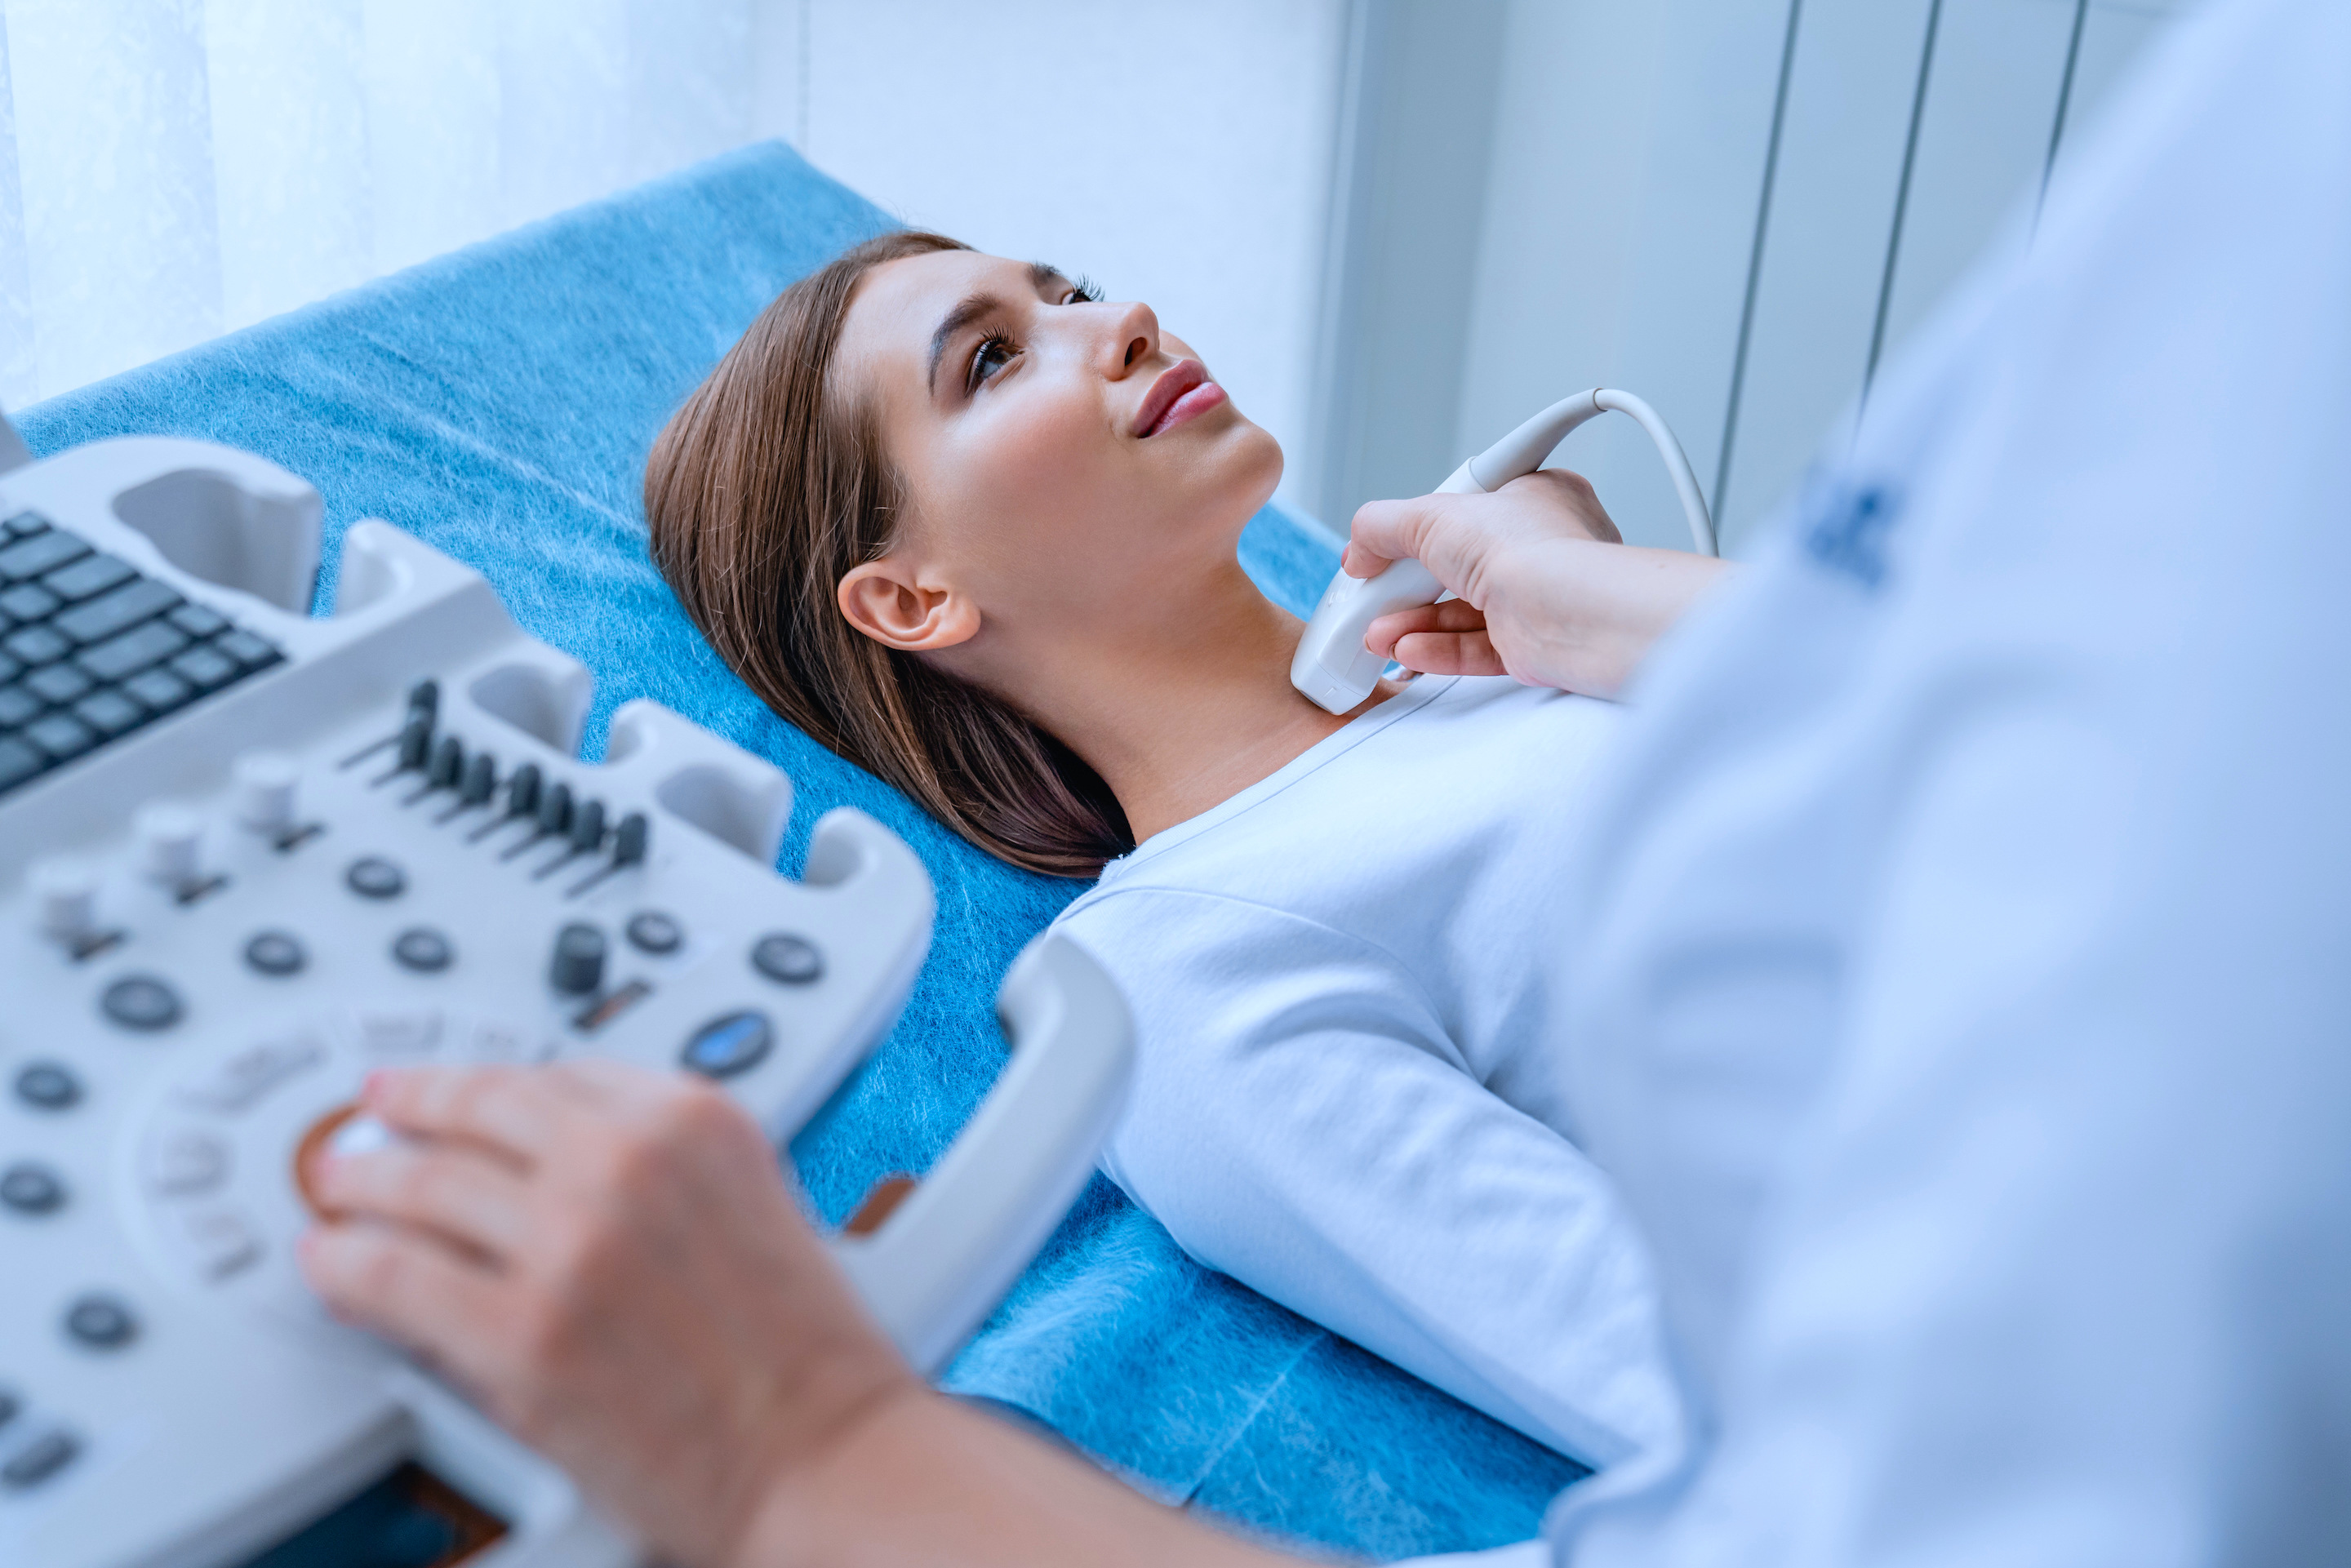 Woman on bed receiving ultrasound.